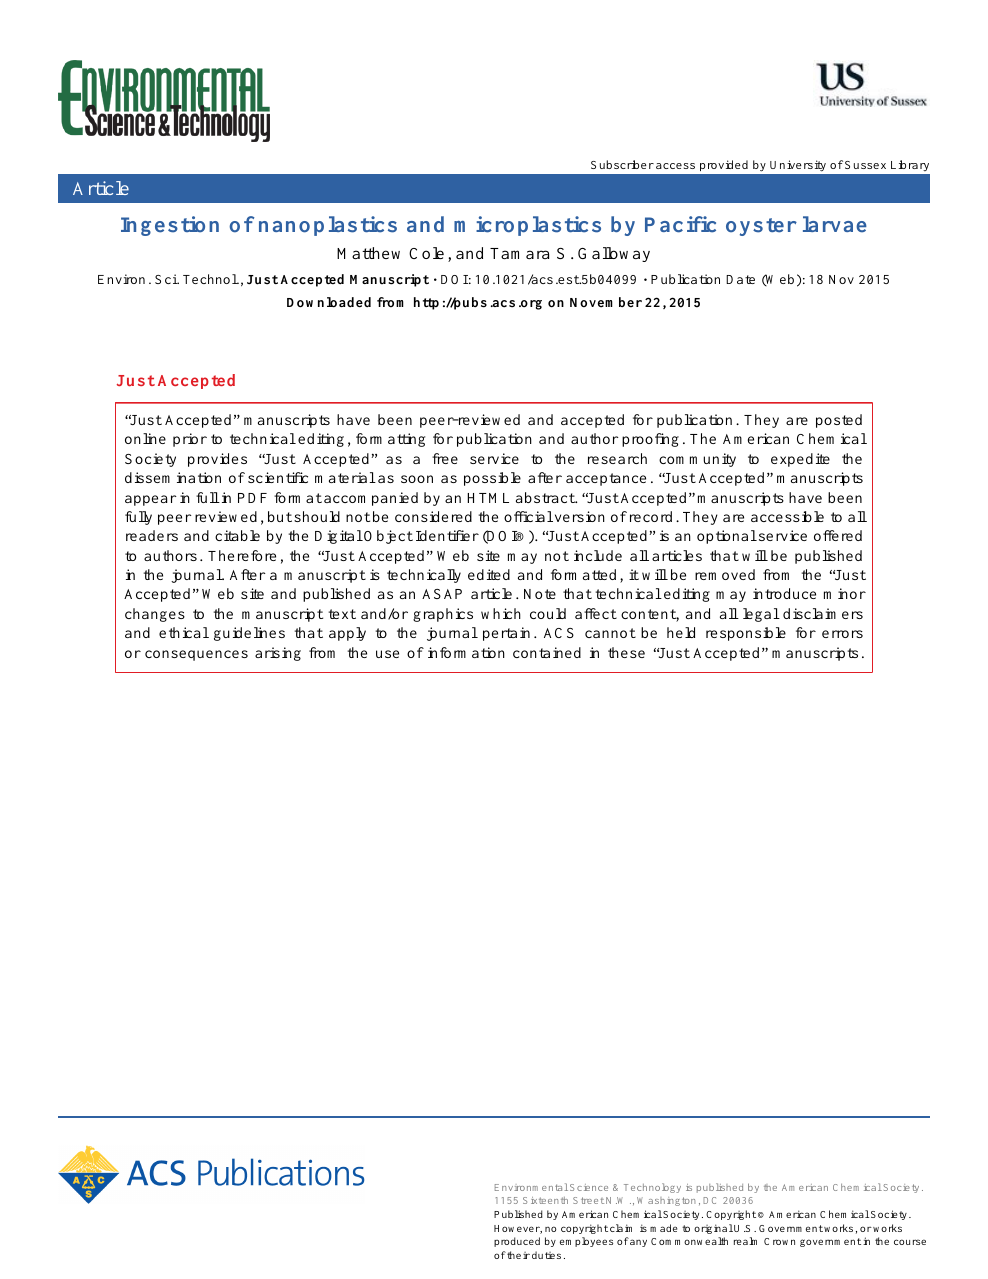 Ingestion of Nanoplastics and Microplastics by Pacific